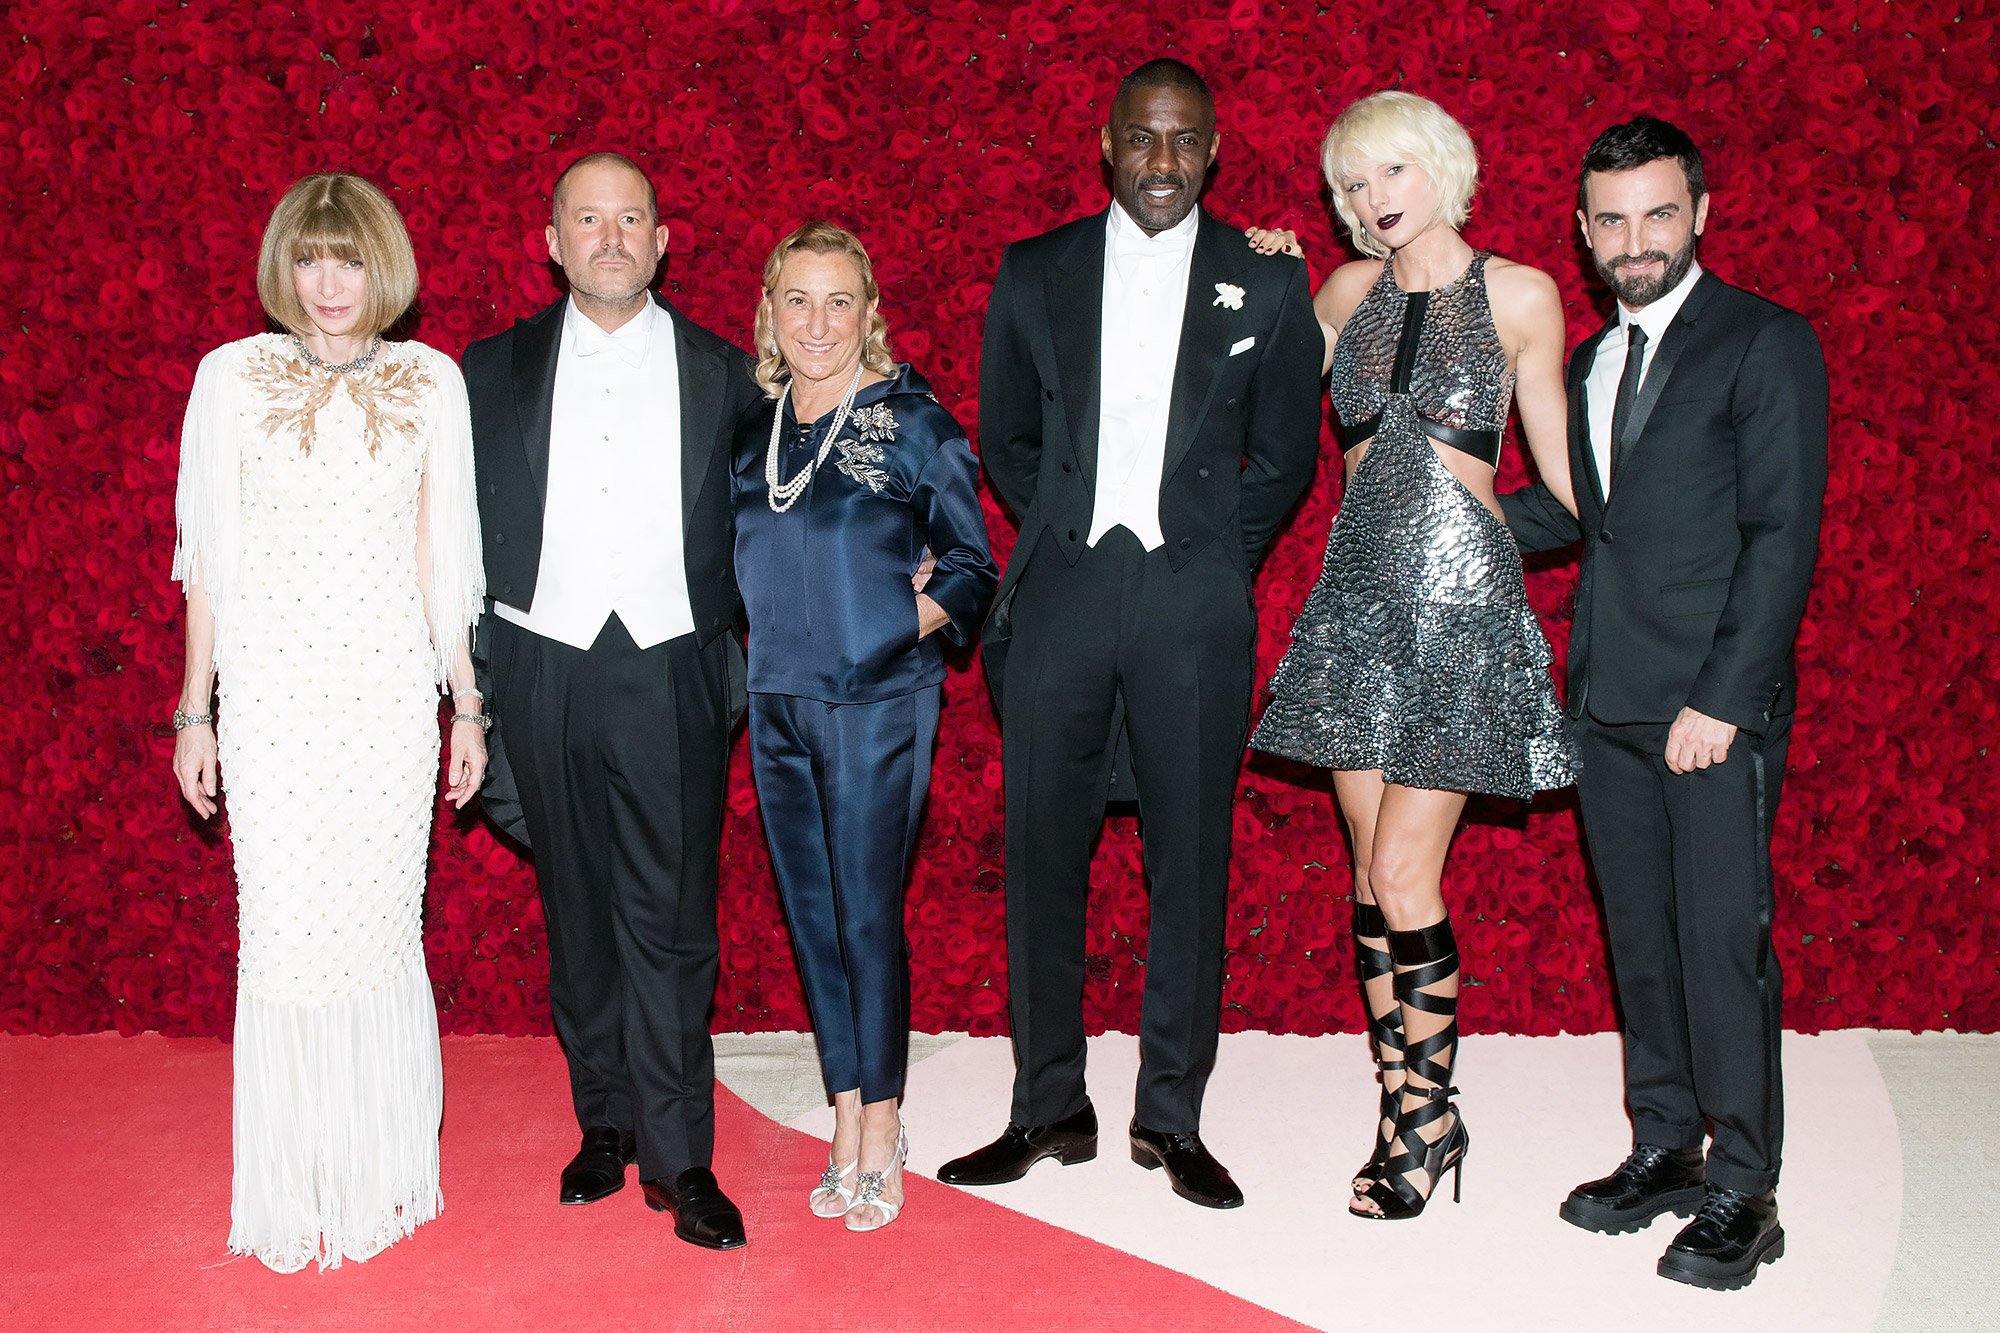 The Metropolitan Museum of Art's COSTUME INSTITUTE Benefit Celebrating the Opening of Manus x Machina: Fashion in an Age of Technology, Inside Arrivals, The Metropolitan Museum of Art, NYC, New York, America - 02 May 2016